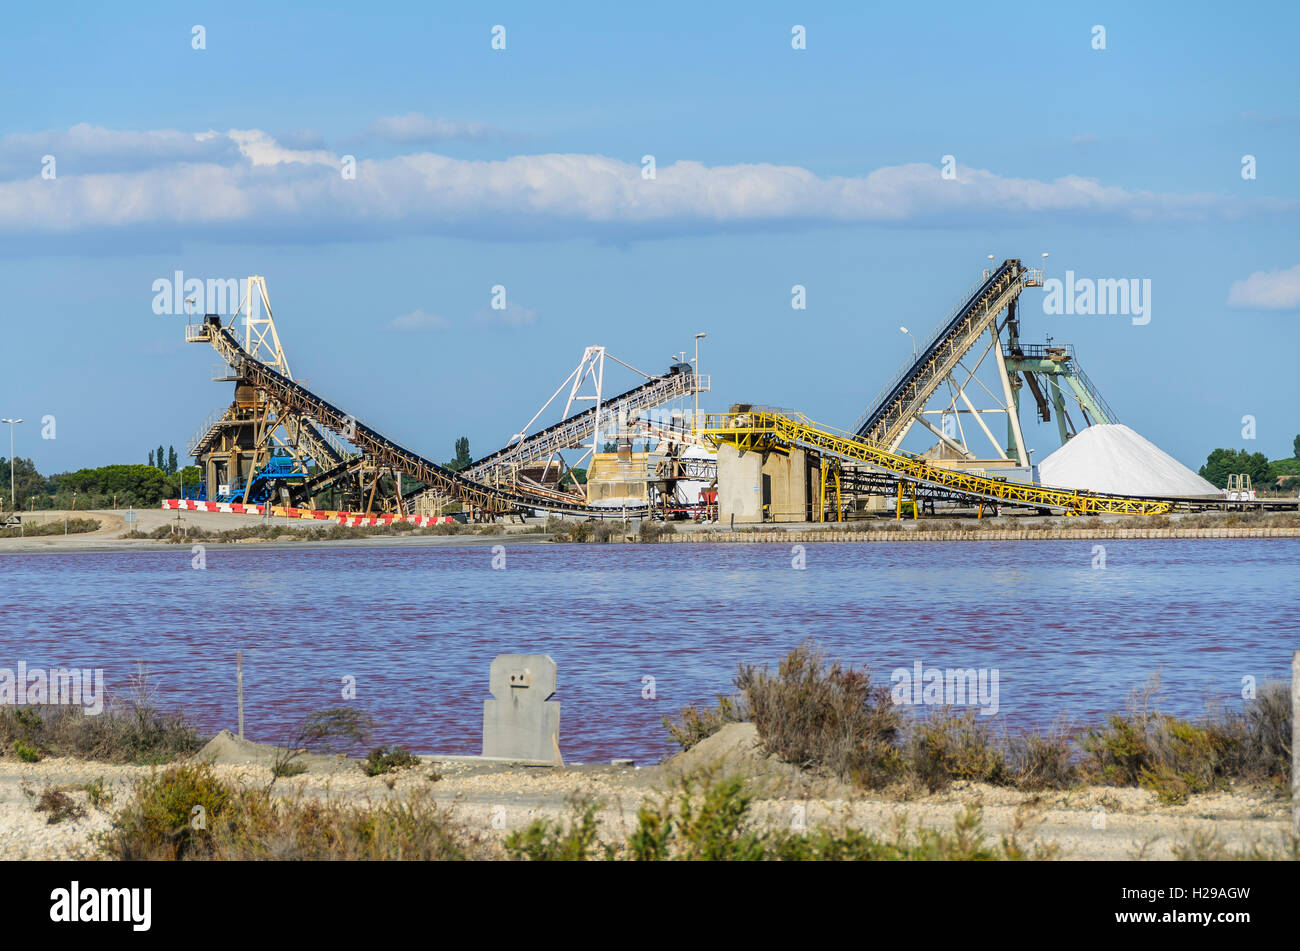 Salins, Aigues-Mortes, Gard, France - Stock Image